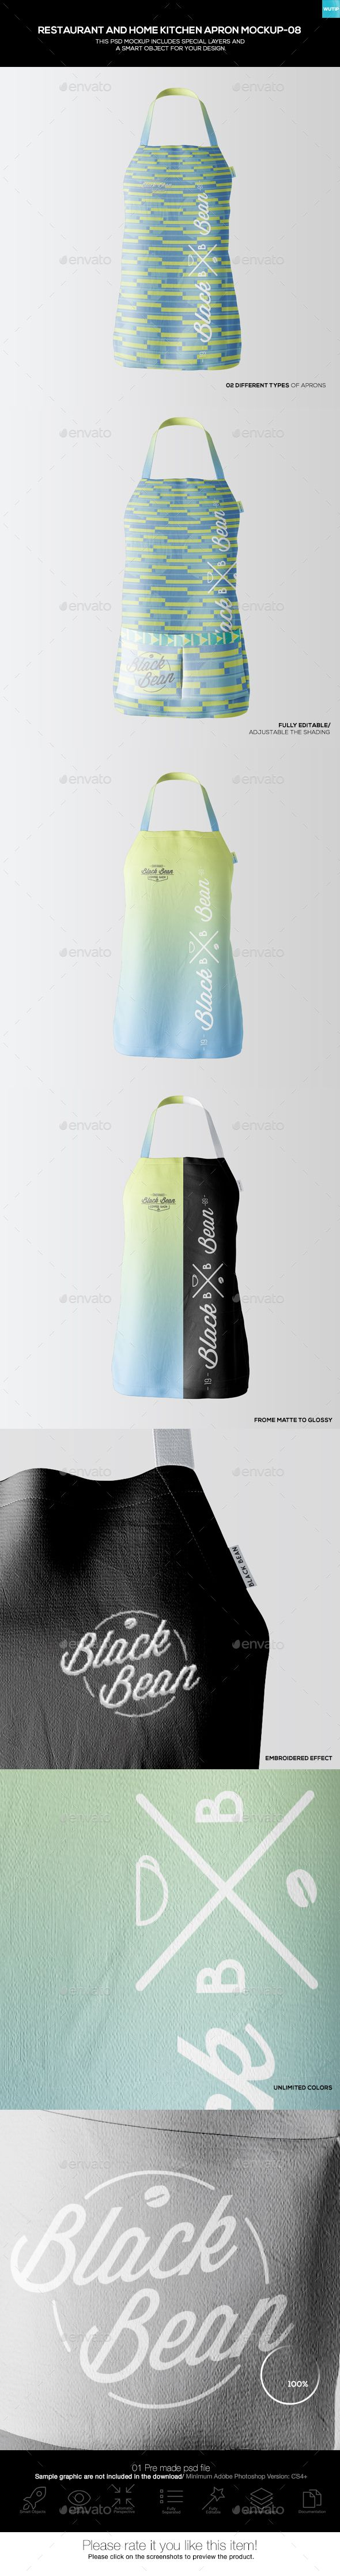 #Restaurant and Home Kietchen Apron #Mockup-08) - Miscellaneous Apparel Download here: https://graphicriver.net/item/restaurant-and-home-kietchen-apron-mockup08/19500951?ref=alena994